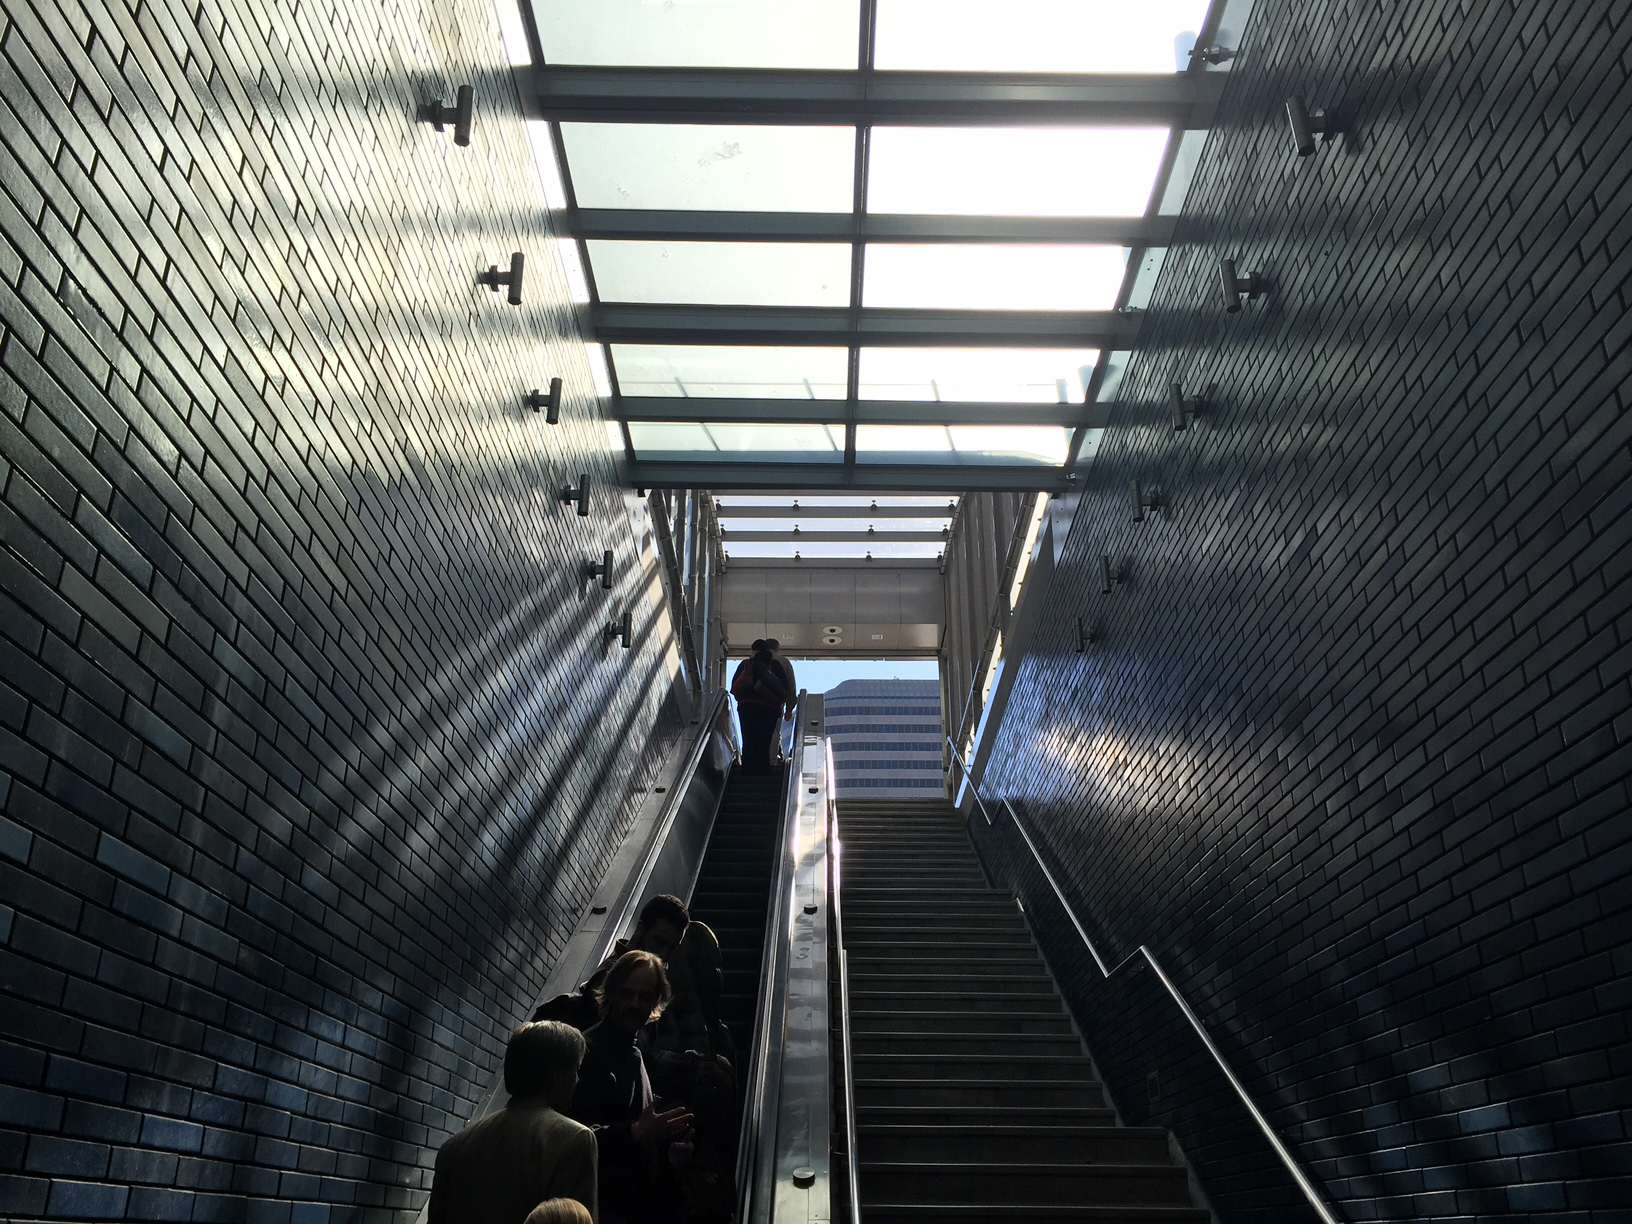 19th street escalator